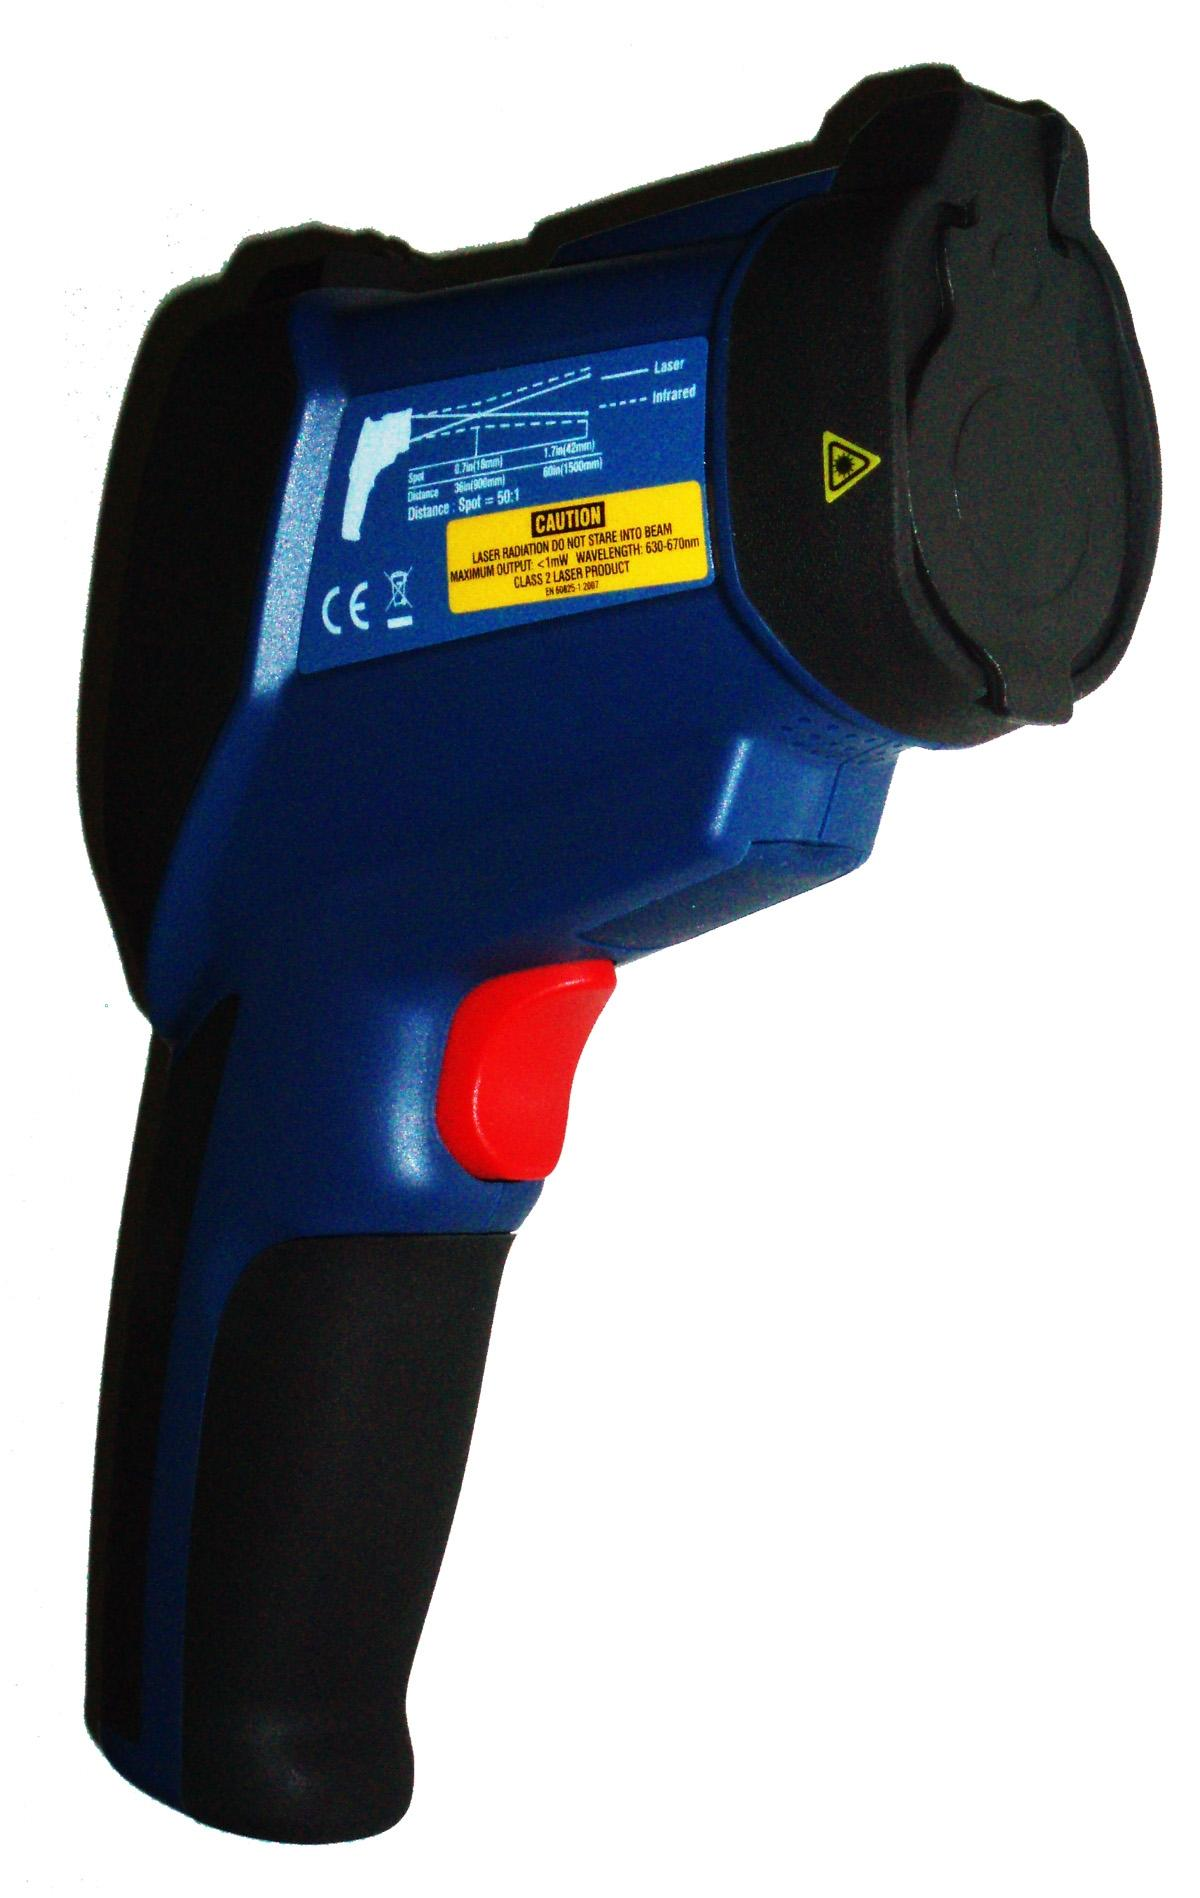 DT-9862 Professional 50:1 IR Dual Laser Video Thermometer up to 3992 deg F 2200 deg C Type K Thermocouple Air Dew Point Wet Bulb Temp and Air Humidity Meter with Camera and USB Port